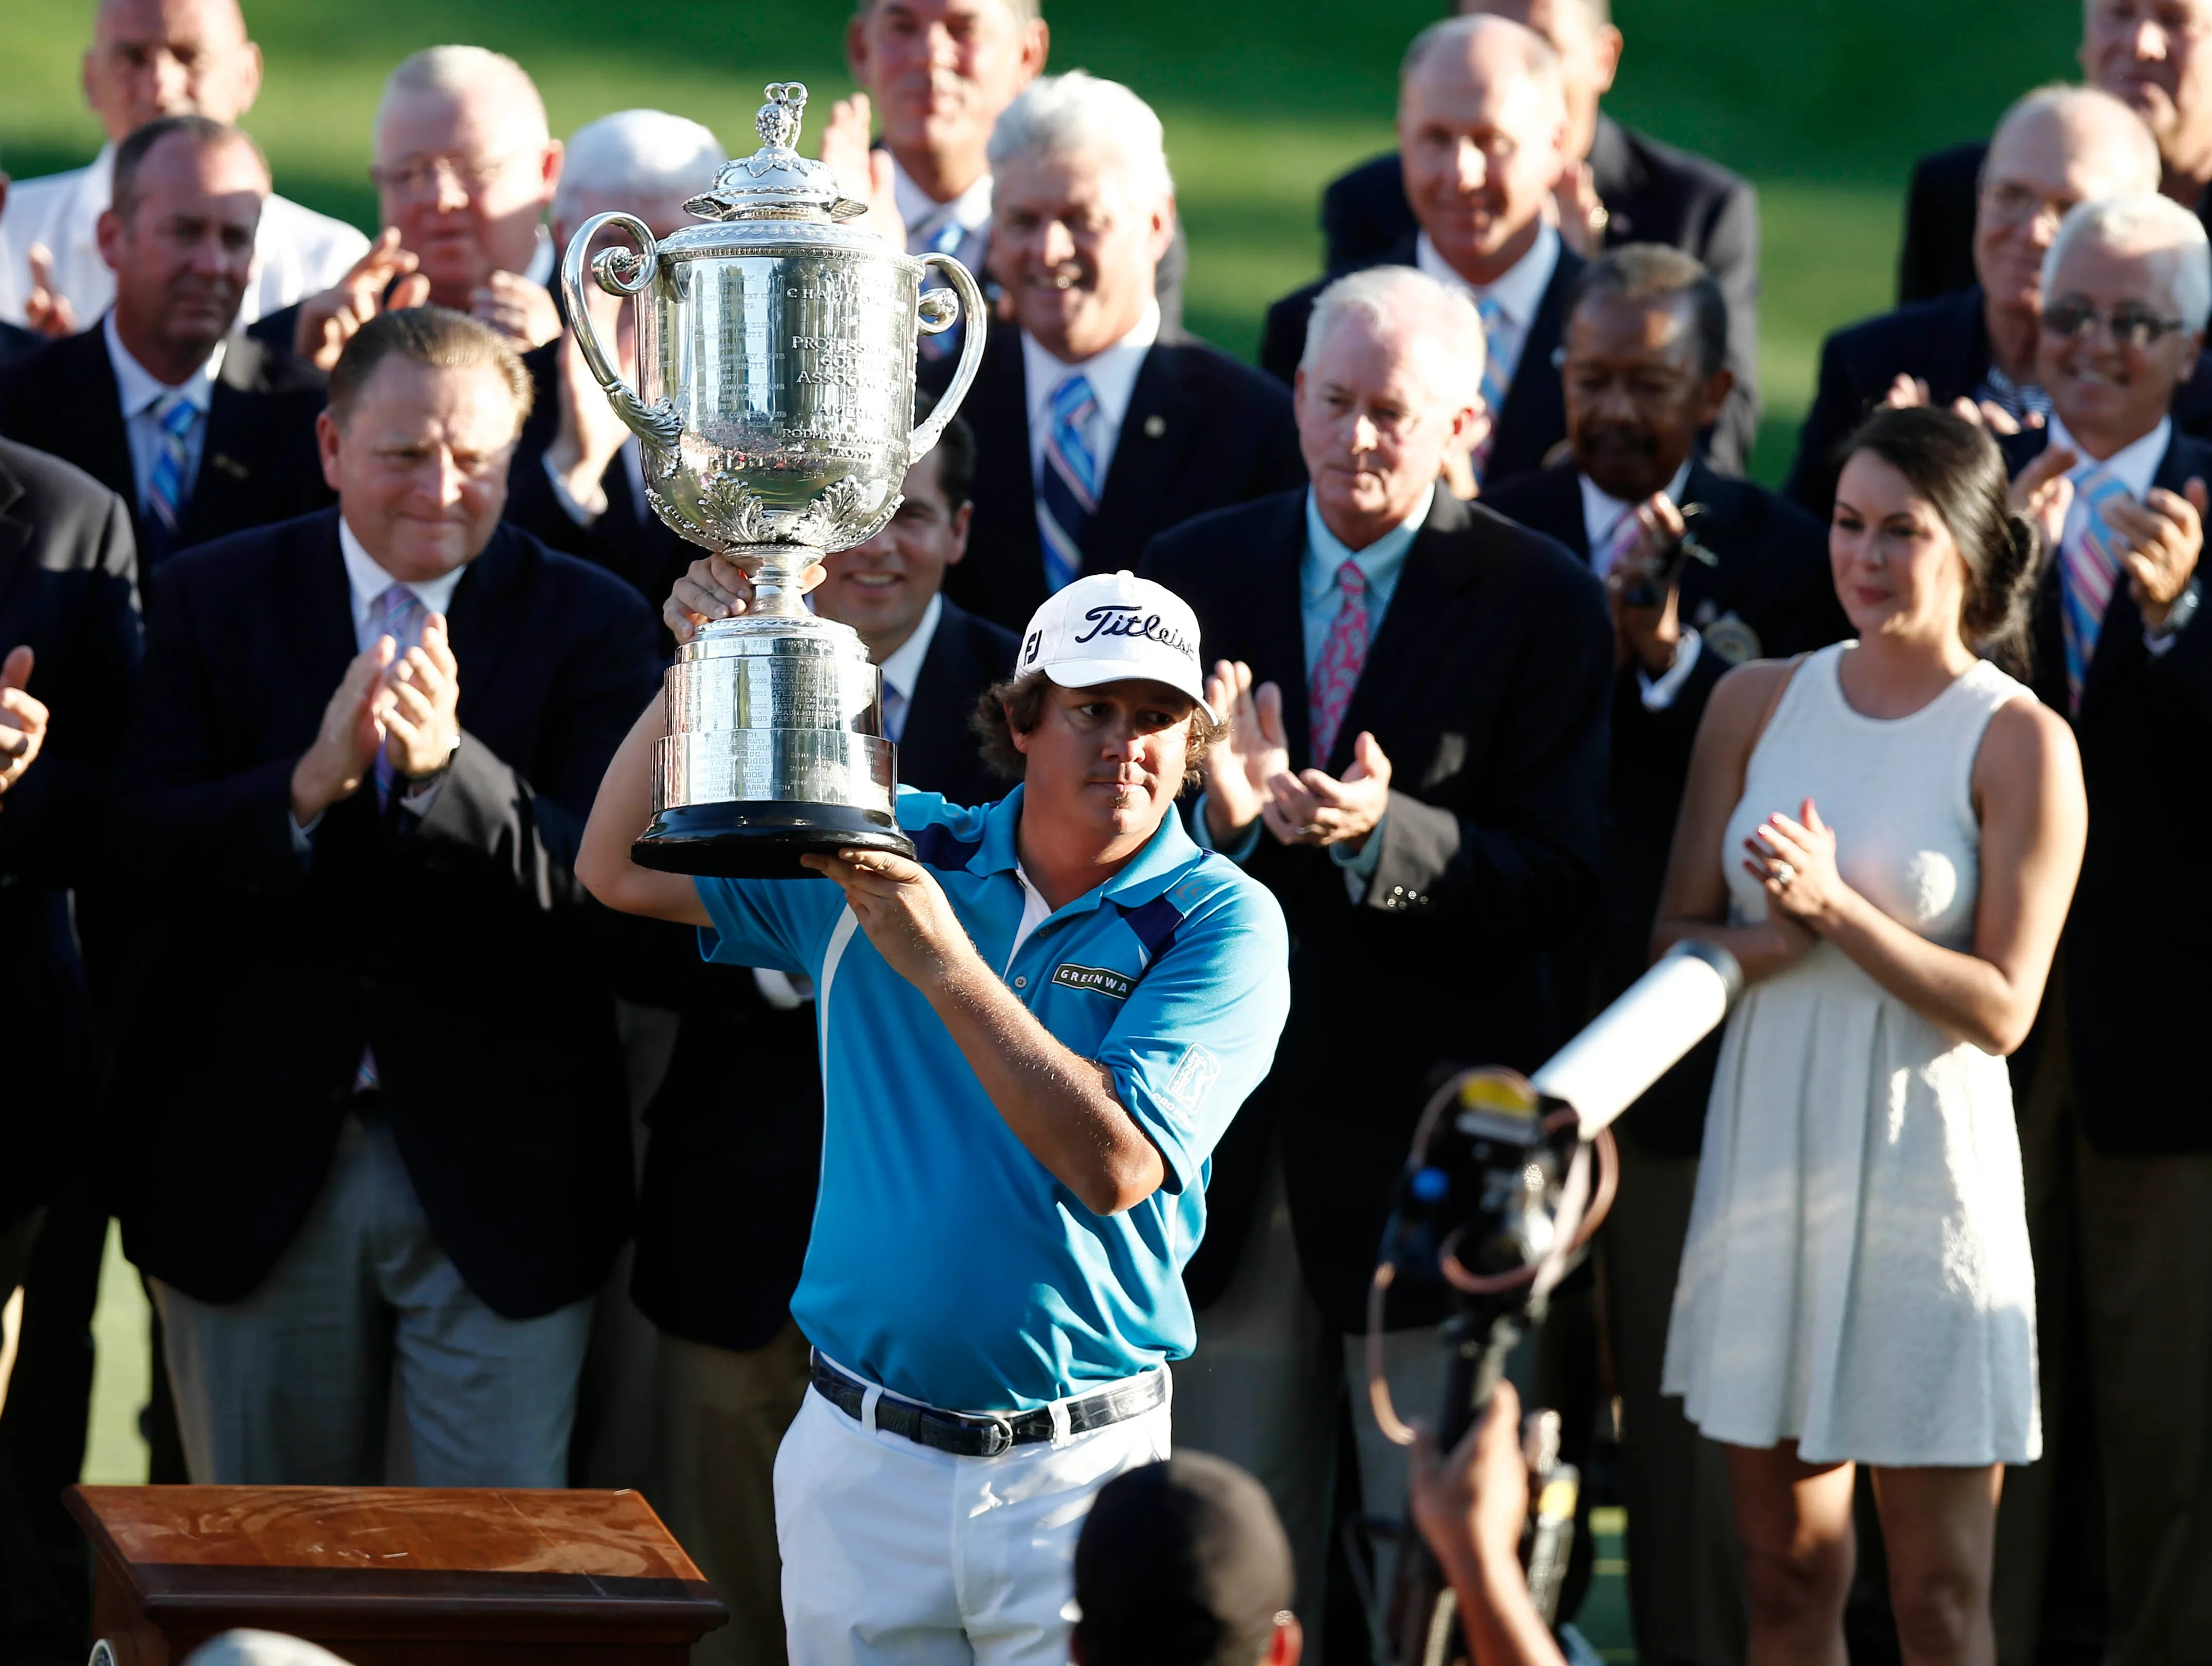 Jason Dufner hoists the Wannamaker Trophy after winning the 95th PGA Championship on Sunday at Oak Hill Country Club in Rochester, N.Y.